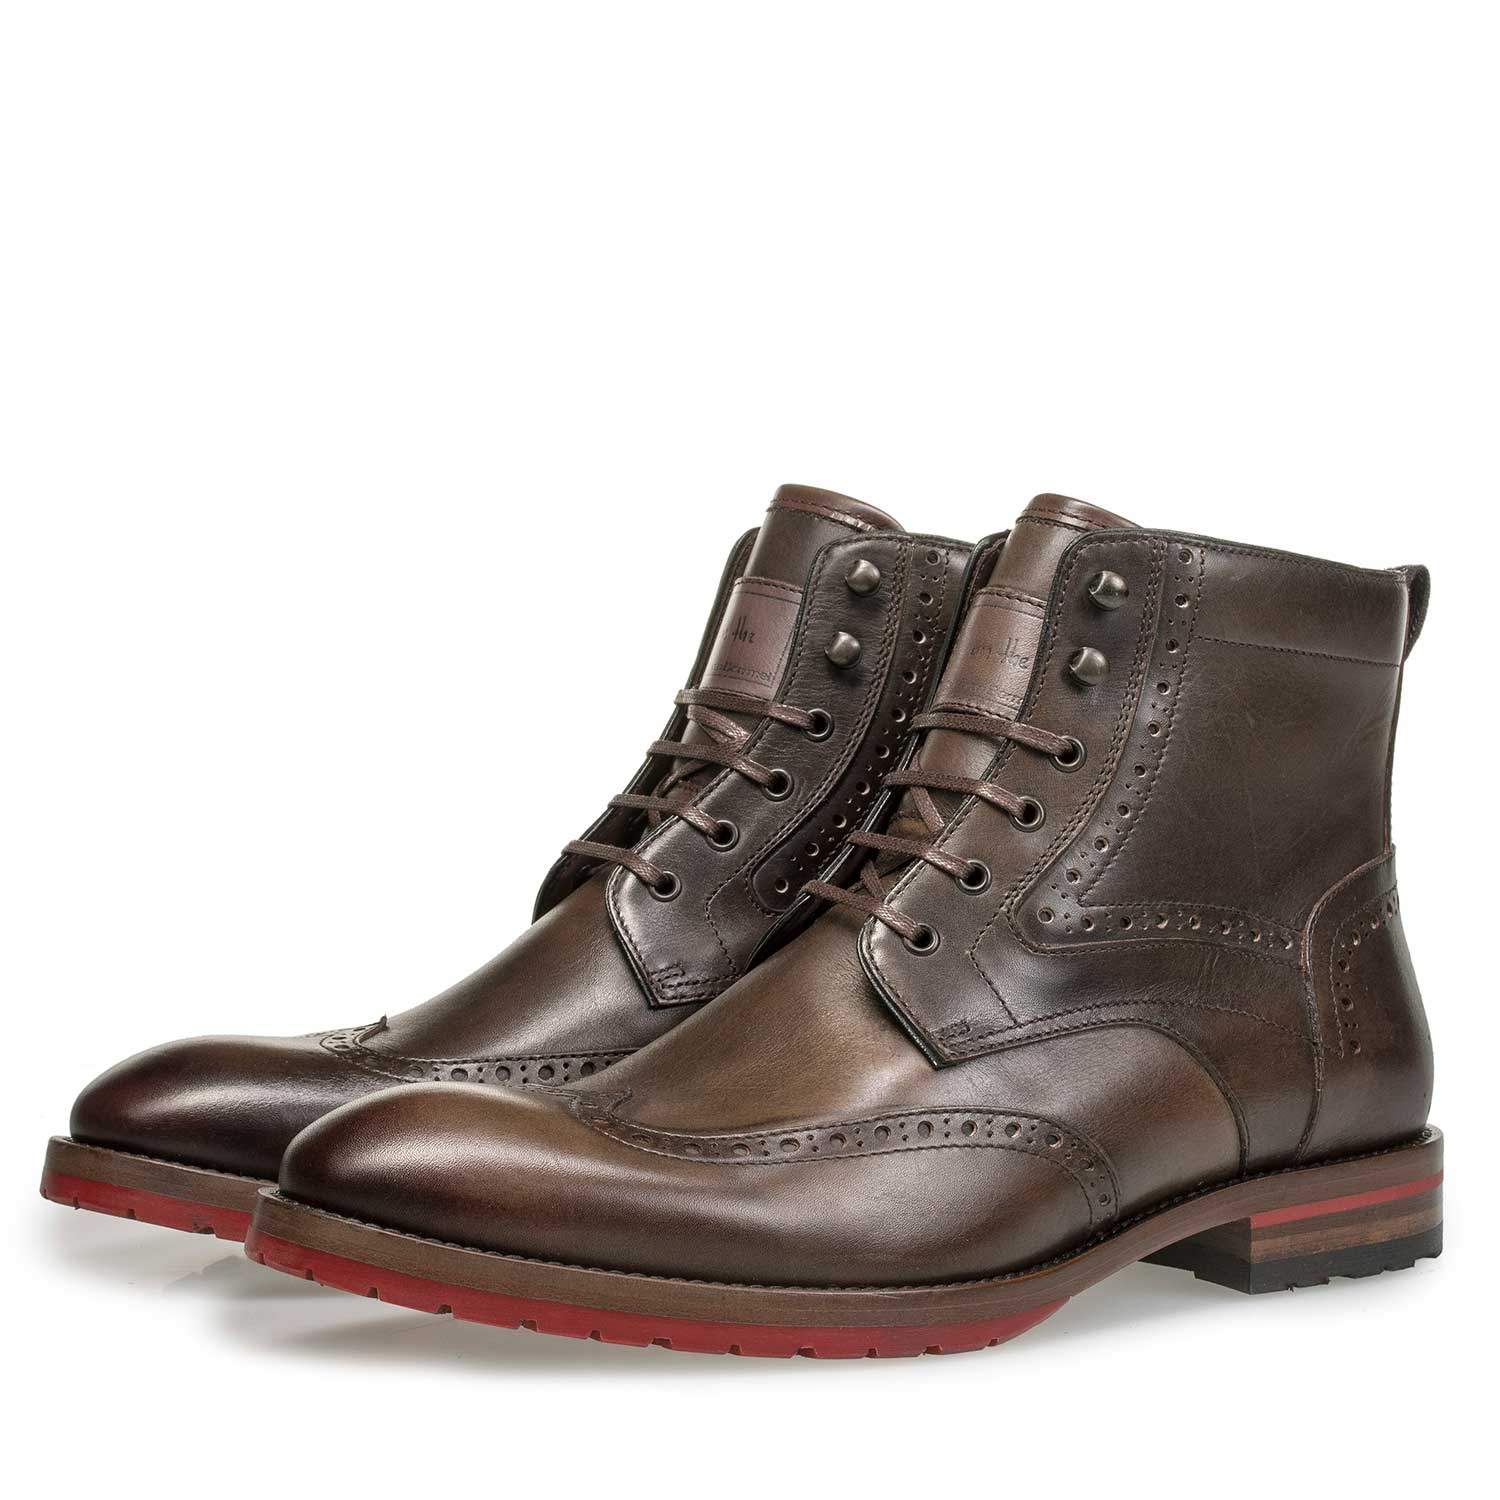 10295/08 - Dark brown calf leather brogue lace boot